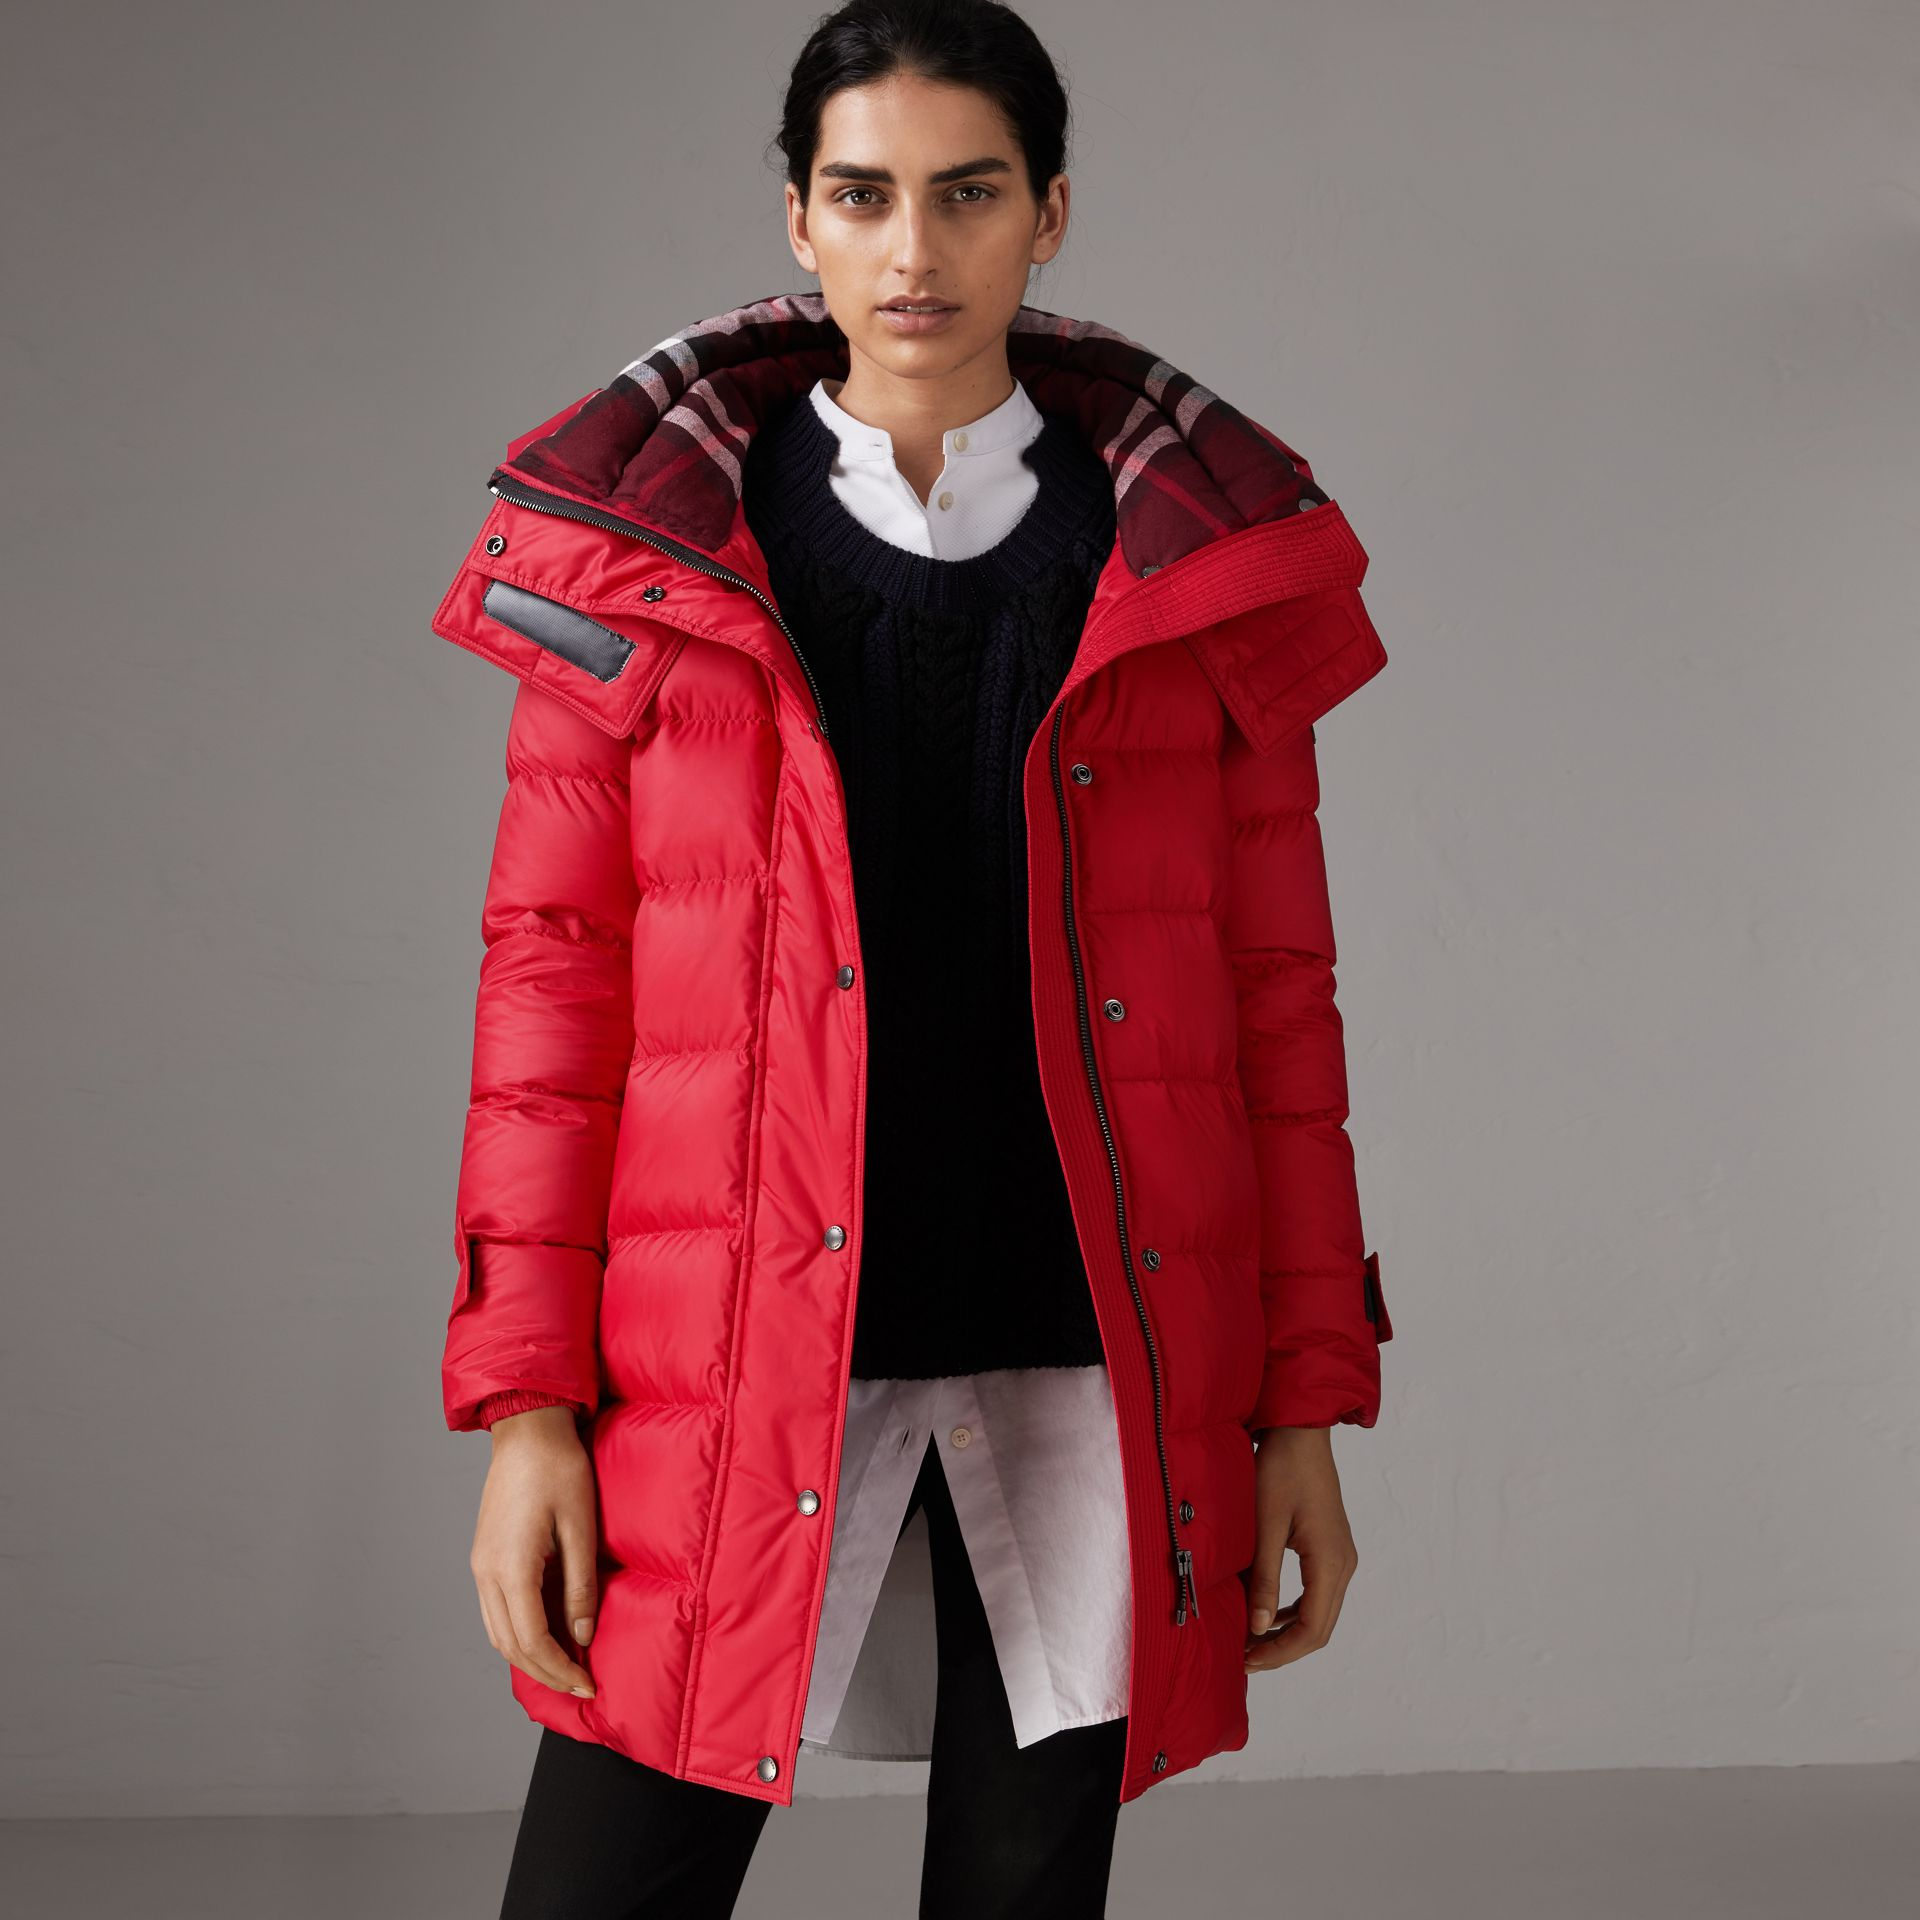 Down-filled Puffer Coat With Detachable Hood in Parade Red - Women | Burberry - gallery image 0